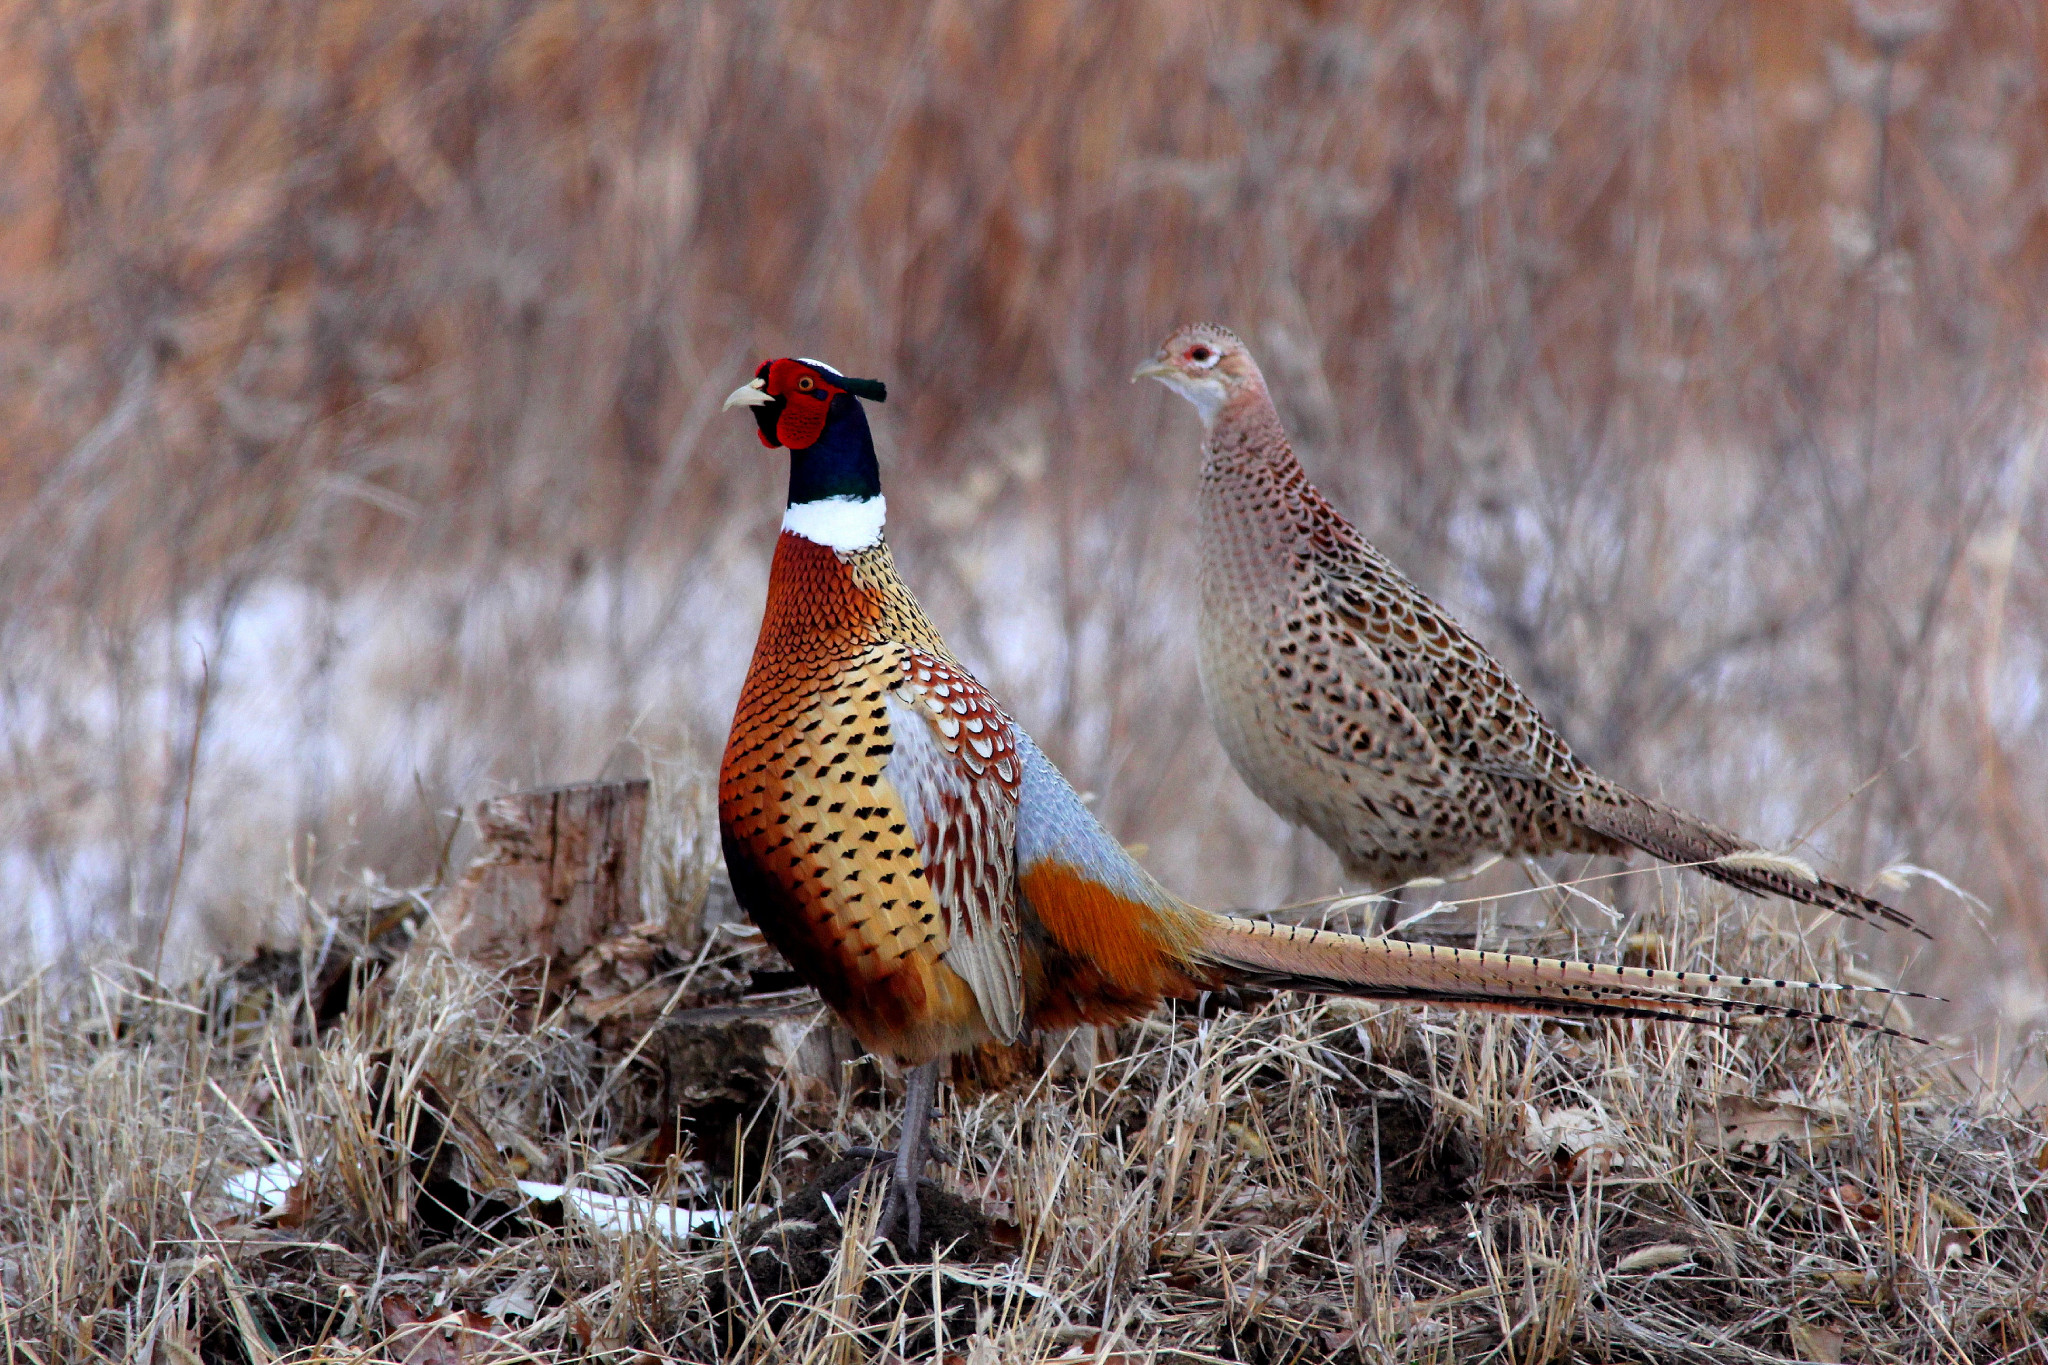 A photo of two pheasants in a field